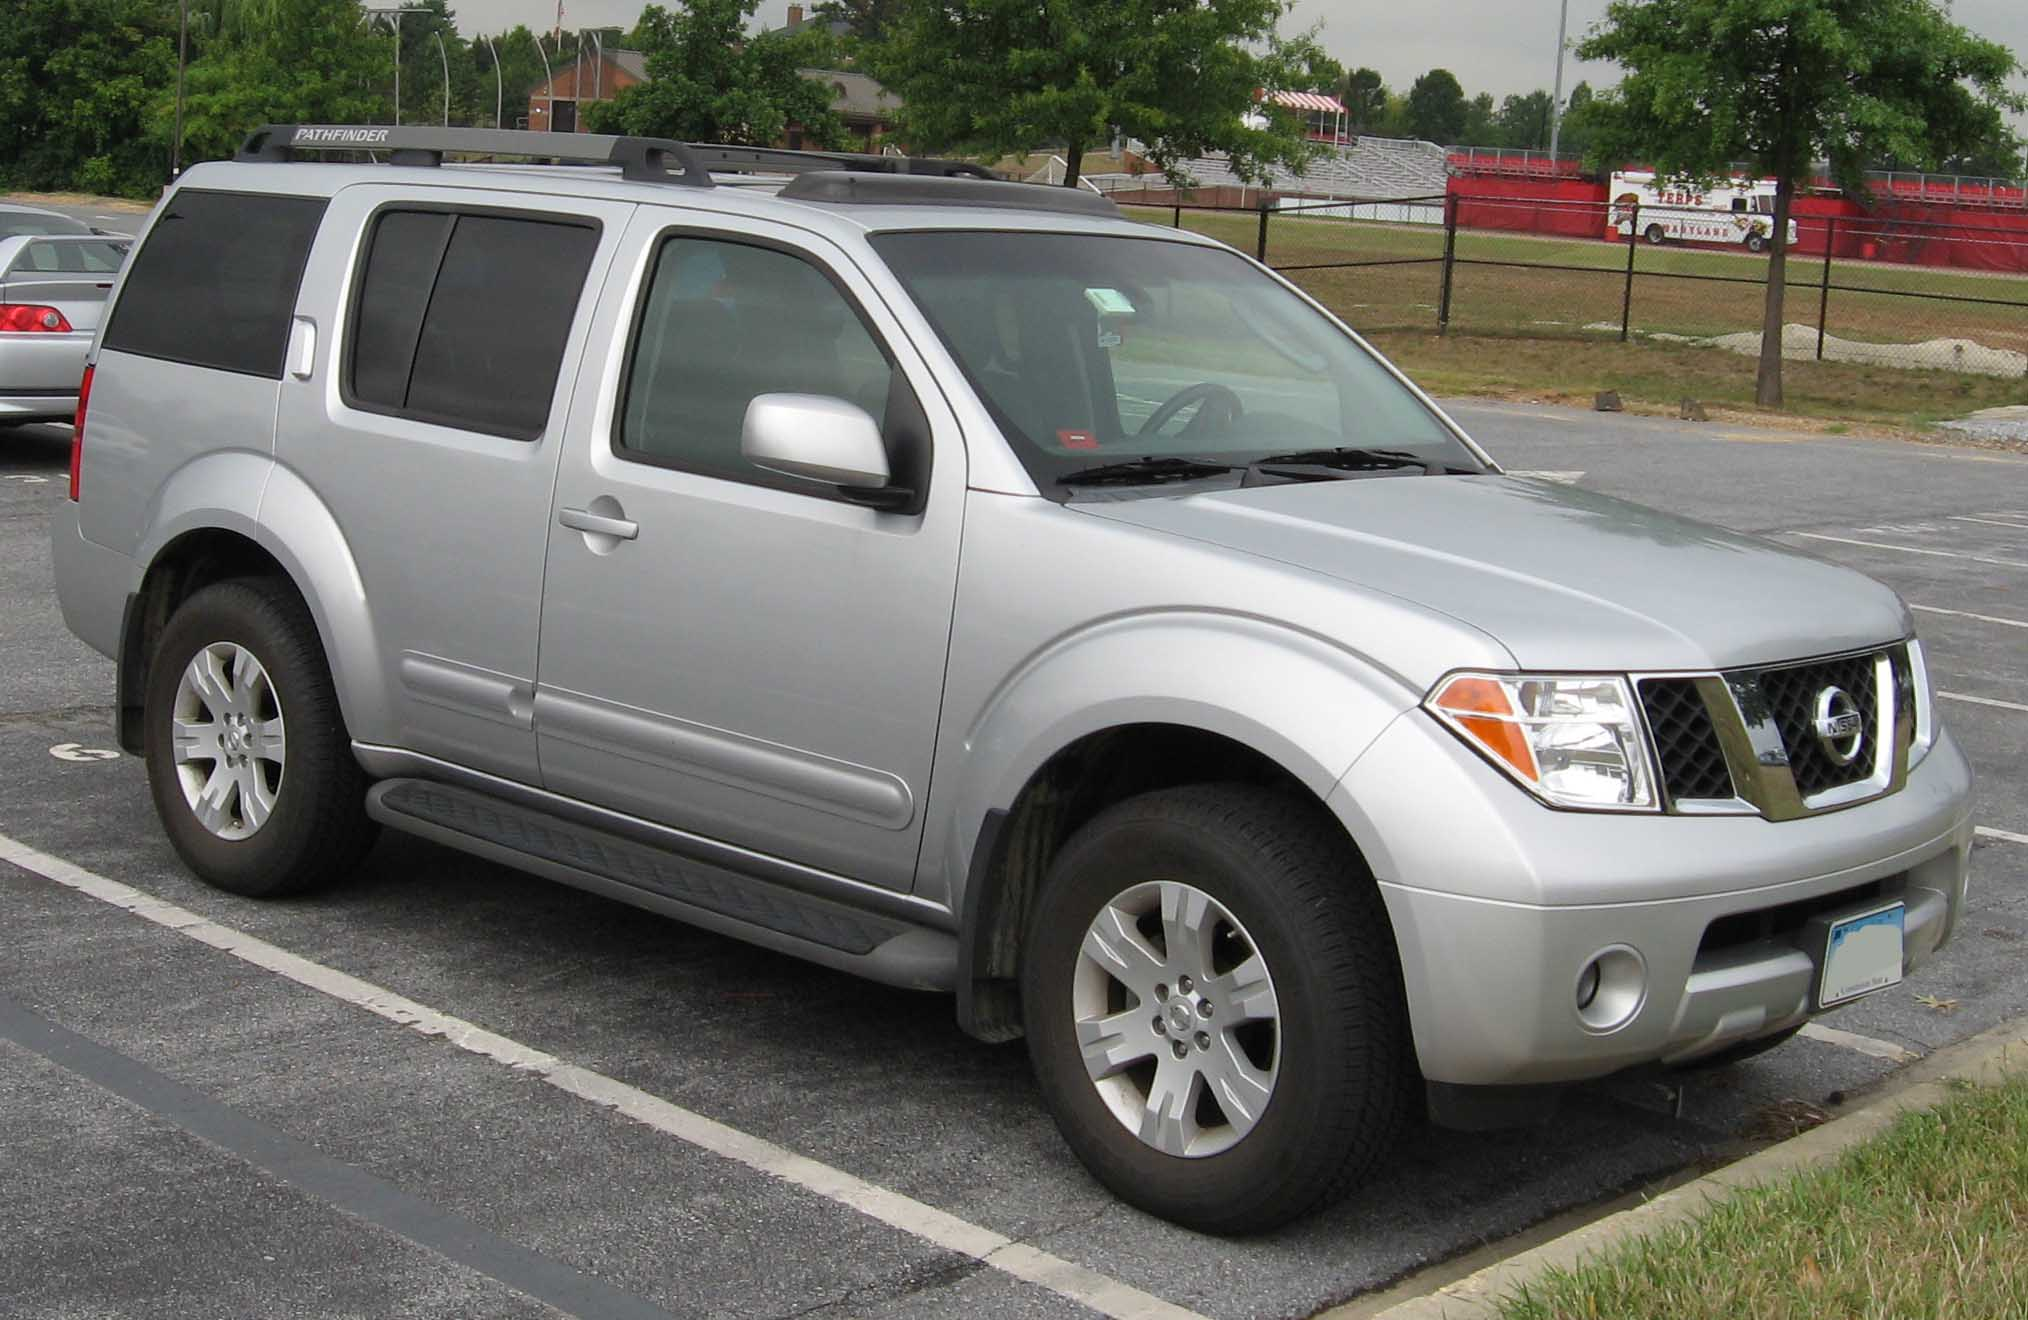 2009 nissan pathfinder lifted image collections hd cars wallpaper 2005 nissan pathfinder lifted gallery hd cars wallpaper nissan navara 2006 2008nissan pick up p27nissan pathfinder nissan navara 2006 2008nissan pick up vanachro Images